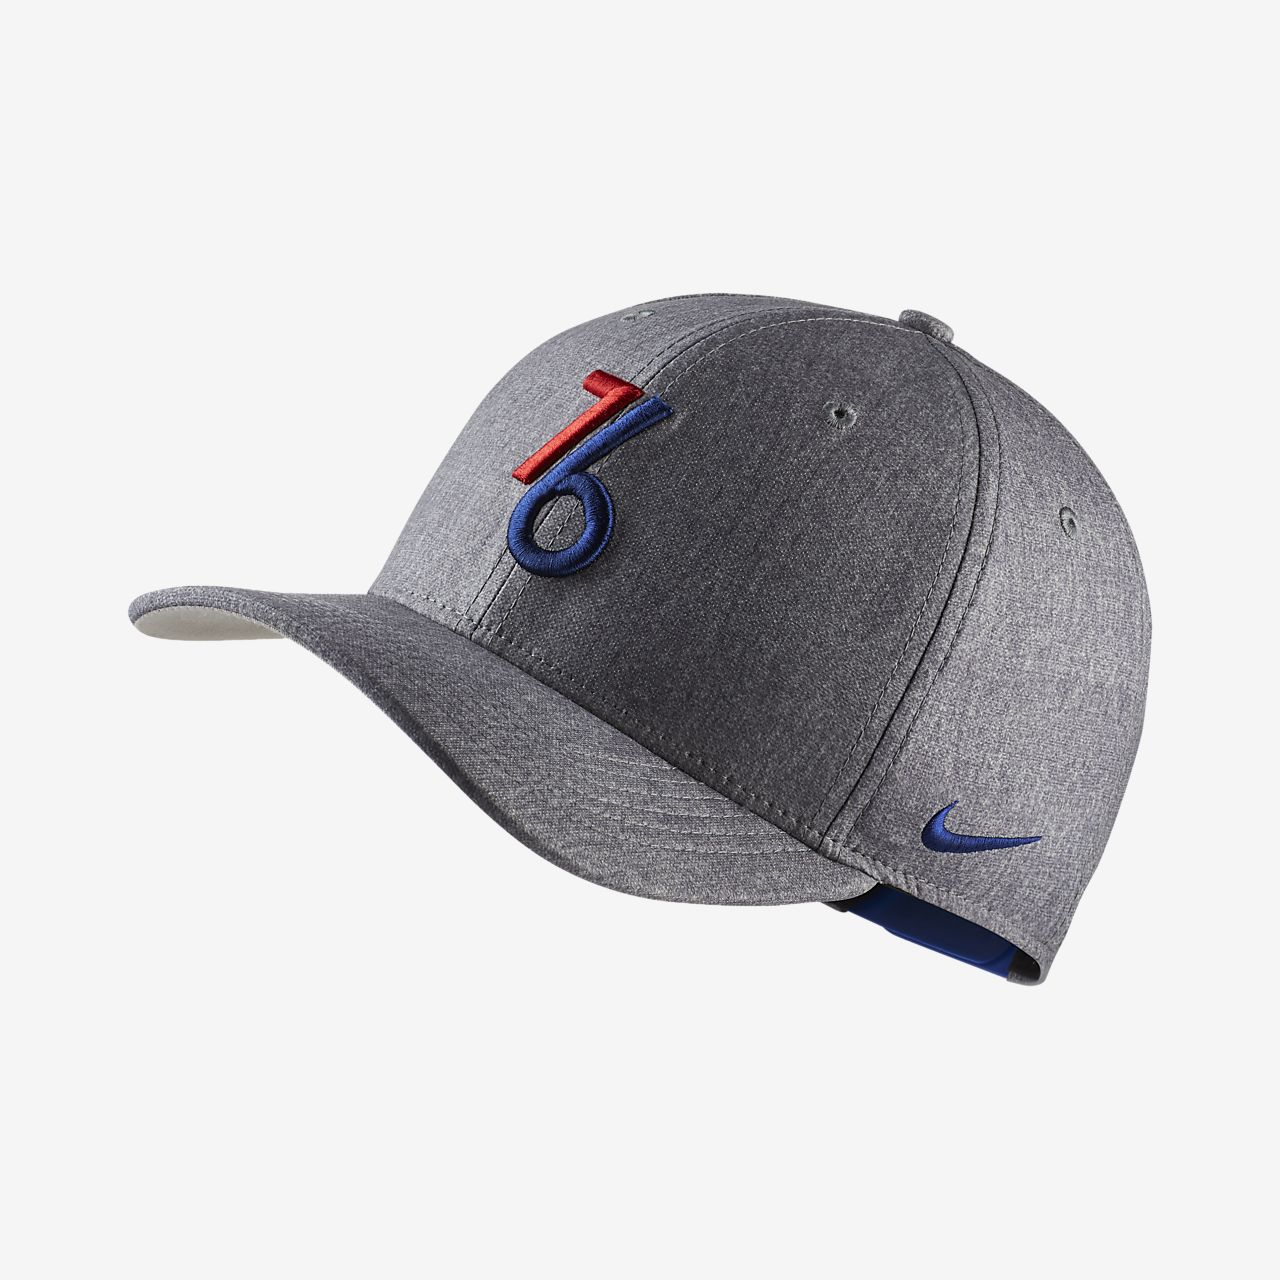 Philadelphia 76ers City Edition Nike AeroBill Classic99 NBA Hat